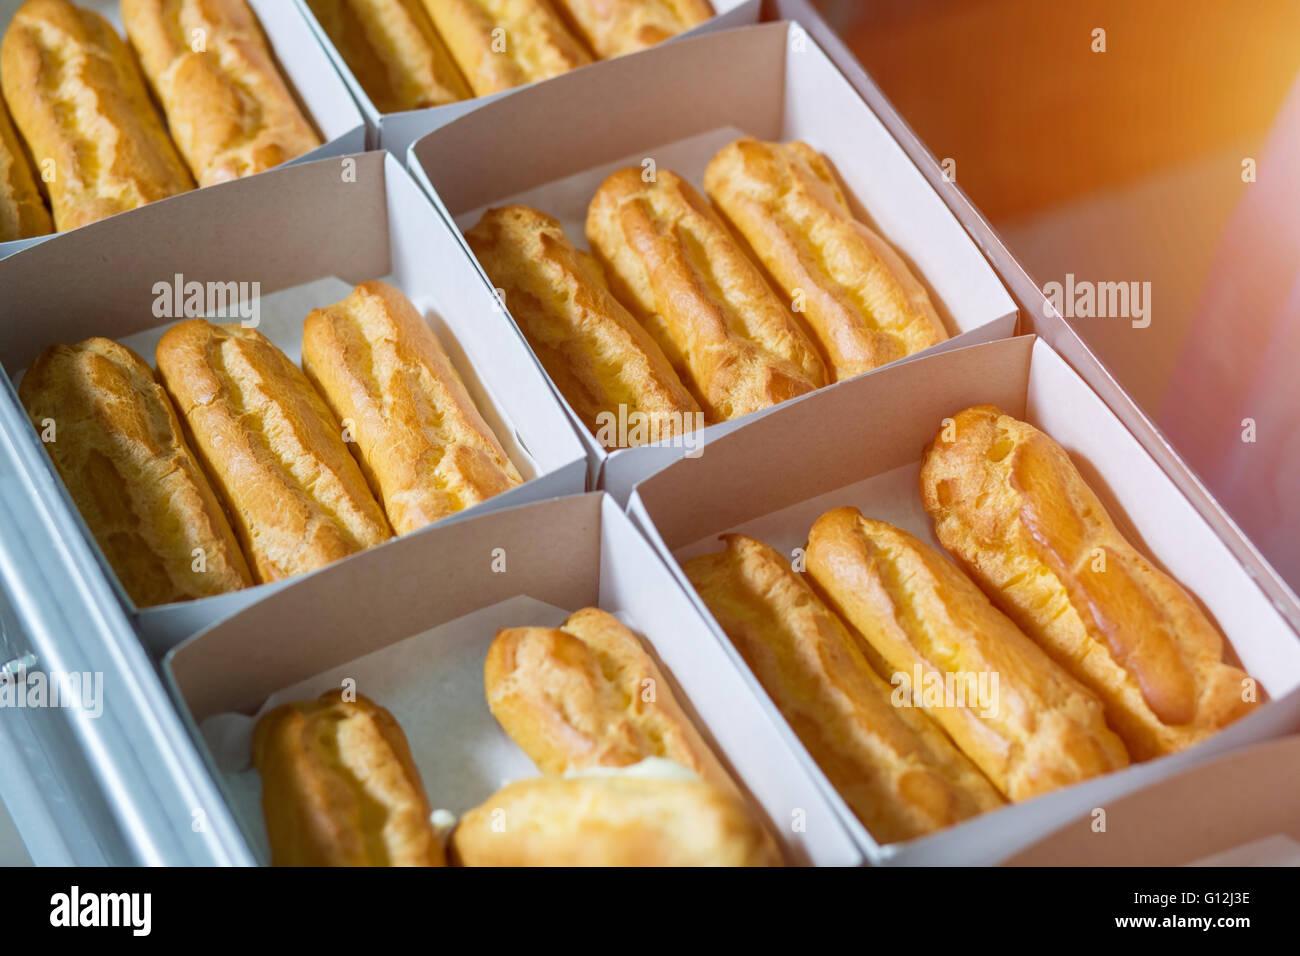 Boxes with eclairs on conveyor. - Stock Image